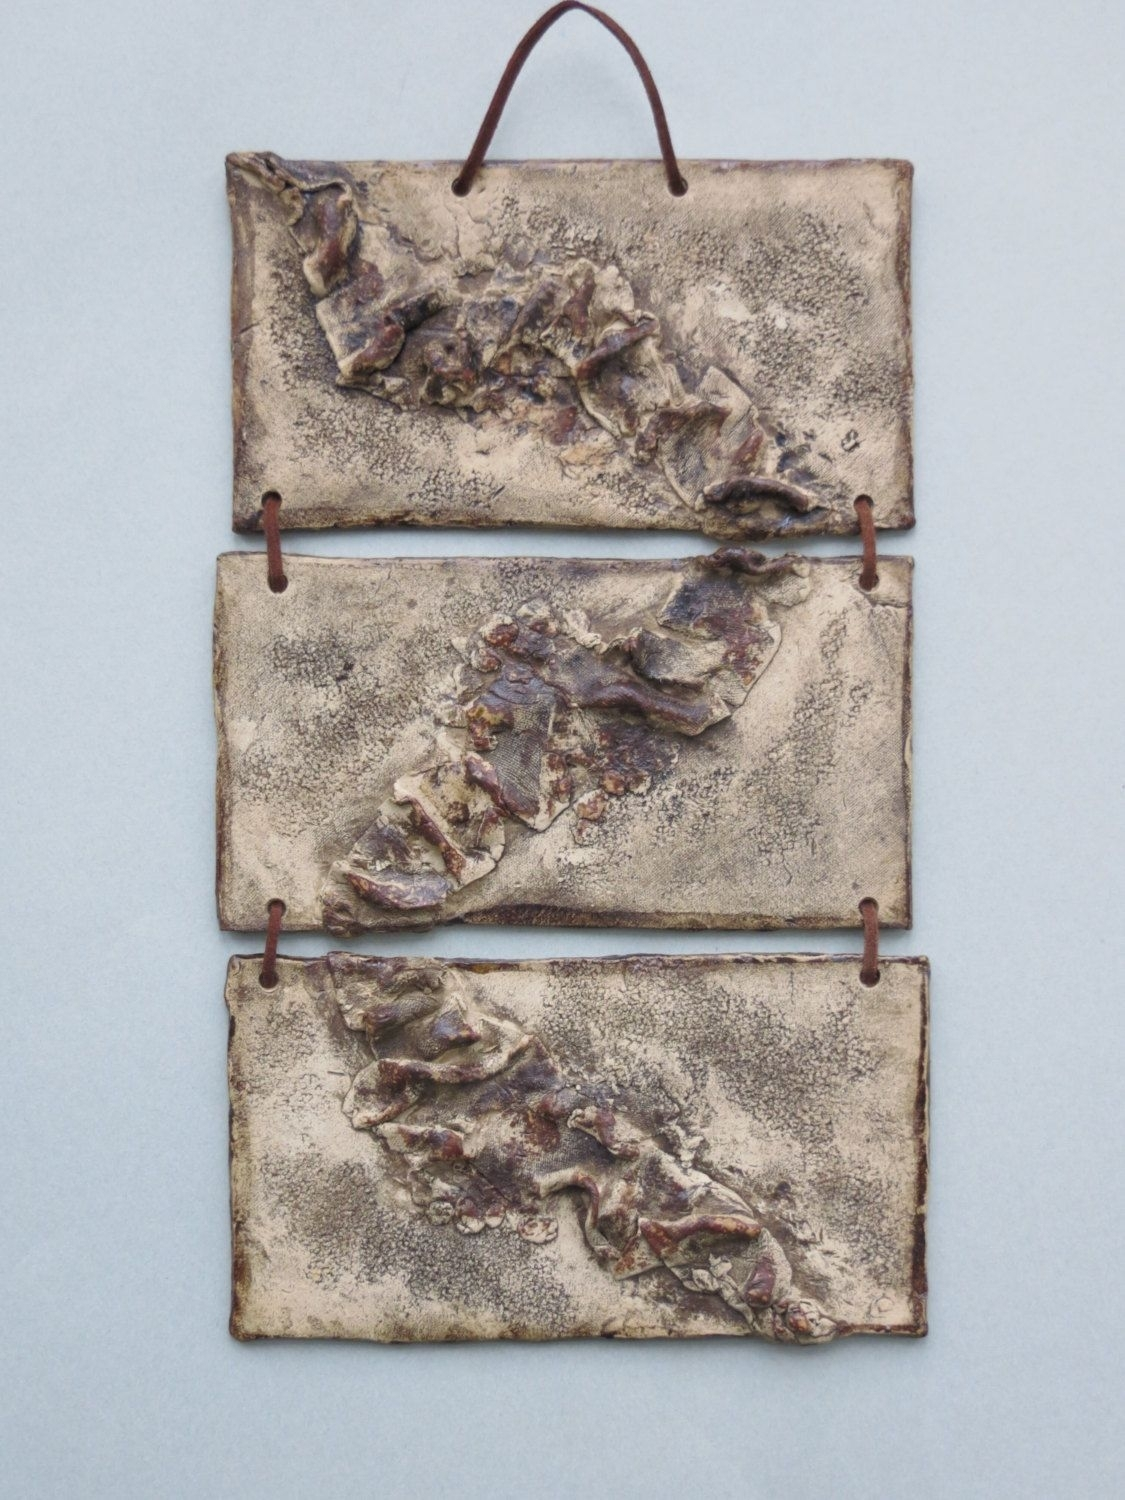 Organic Abstract Ceramic Wall Hanging Earth Tone Clay Wall Art intended for Ceramic Wall Art (Image 19 of 20)